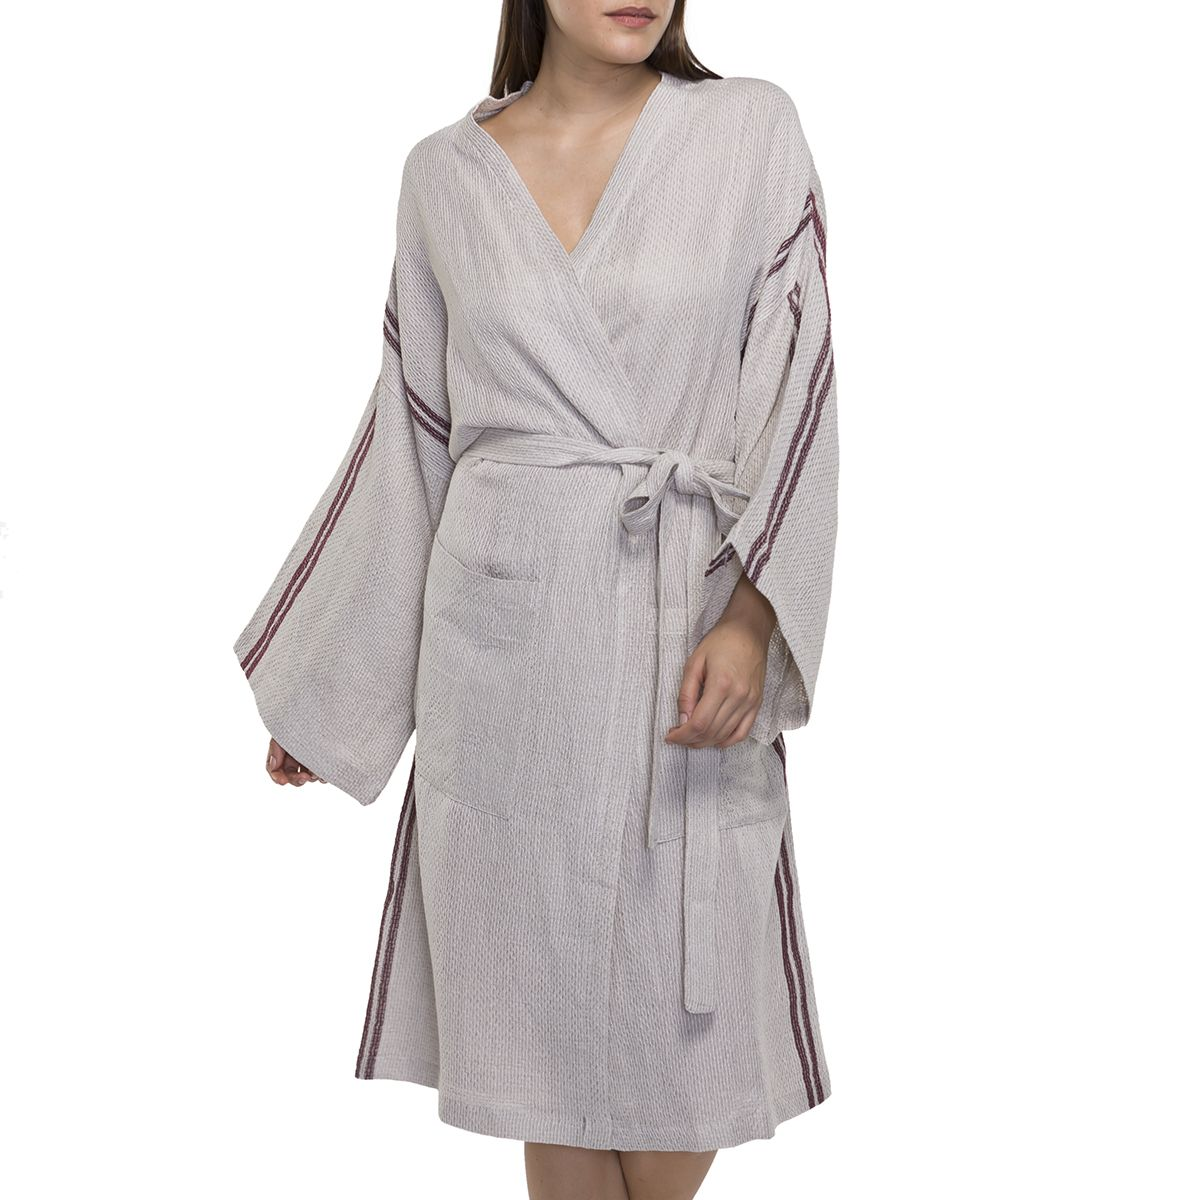 Bathrobe - Dressing Gown Honeycombed - Grey / Bordeaux Stripes